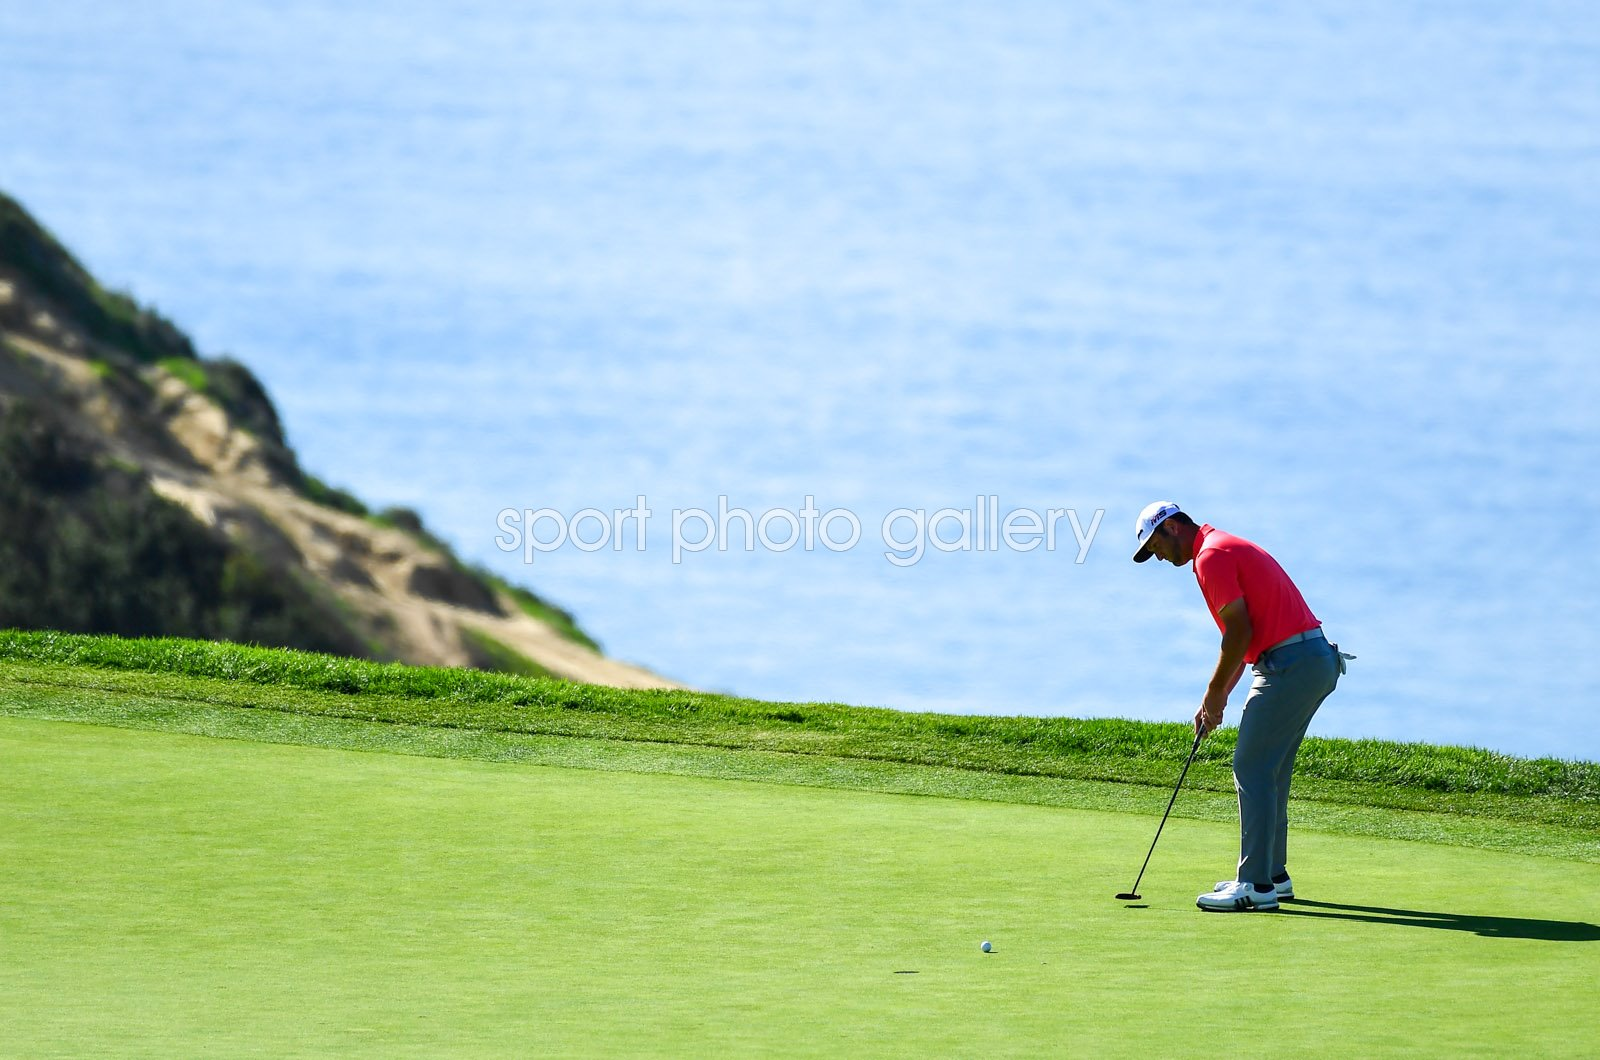 Jon Rahm Torrey Pines South Course San Diego California 2019